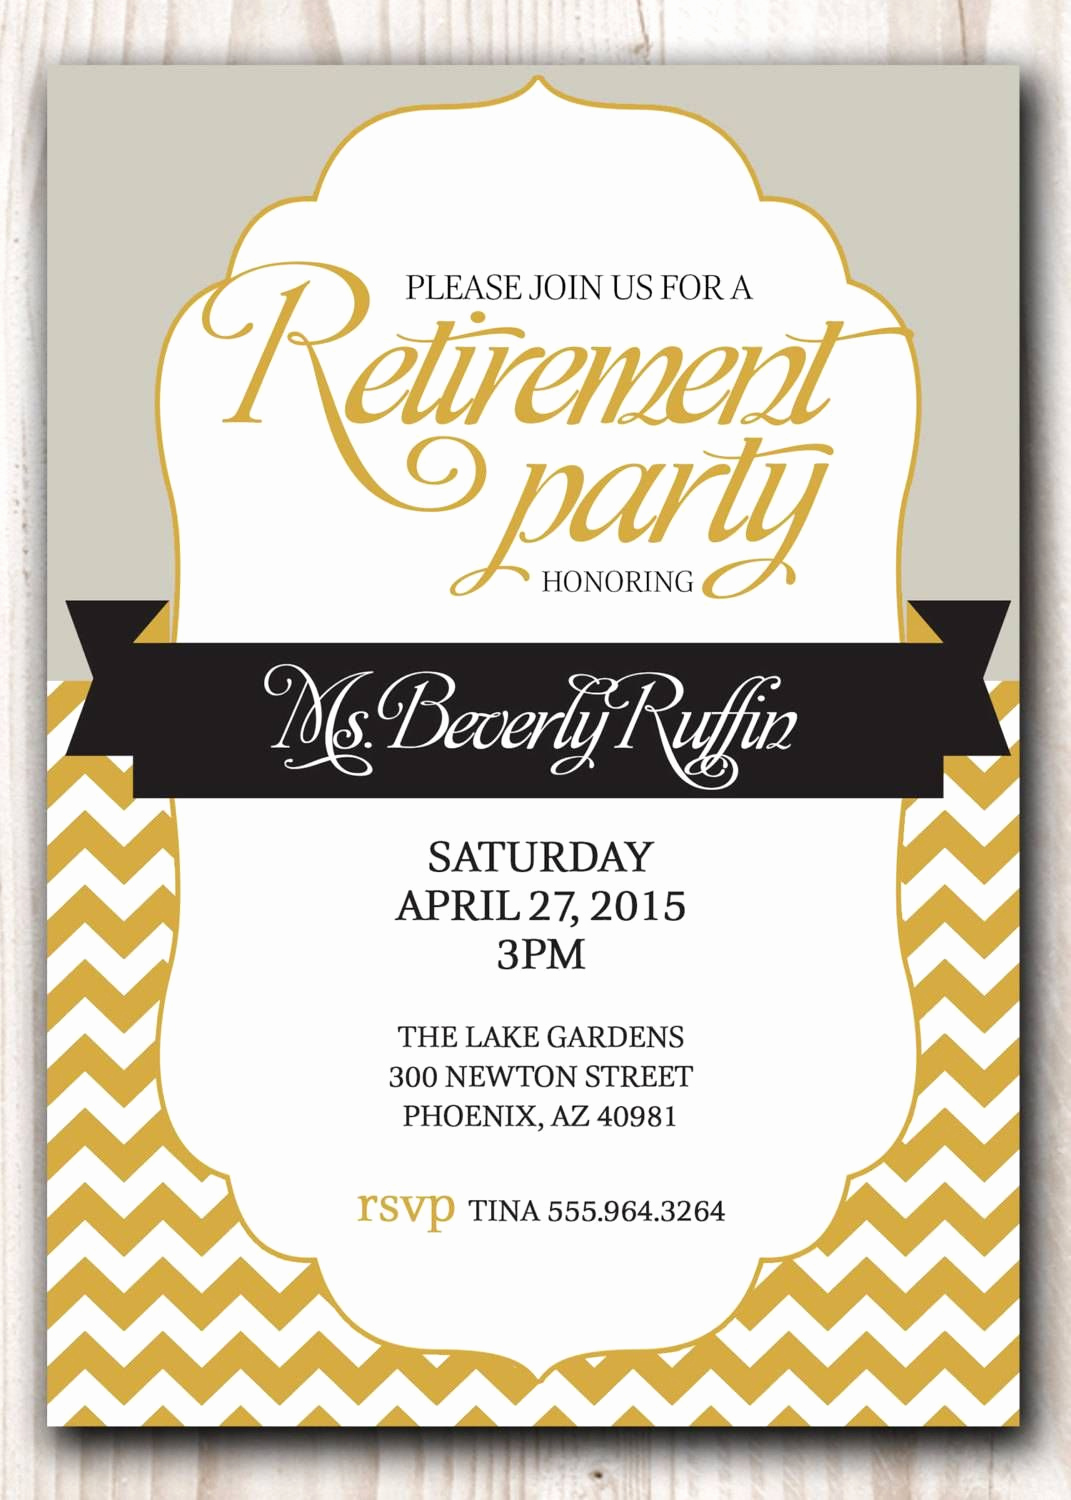 Retirement Party Invite Template Fresh Retirement Party Invitation Template Microsoft